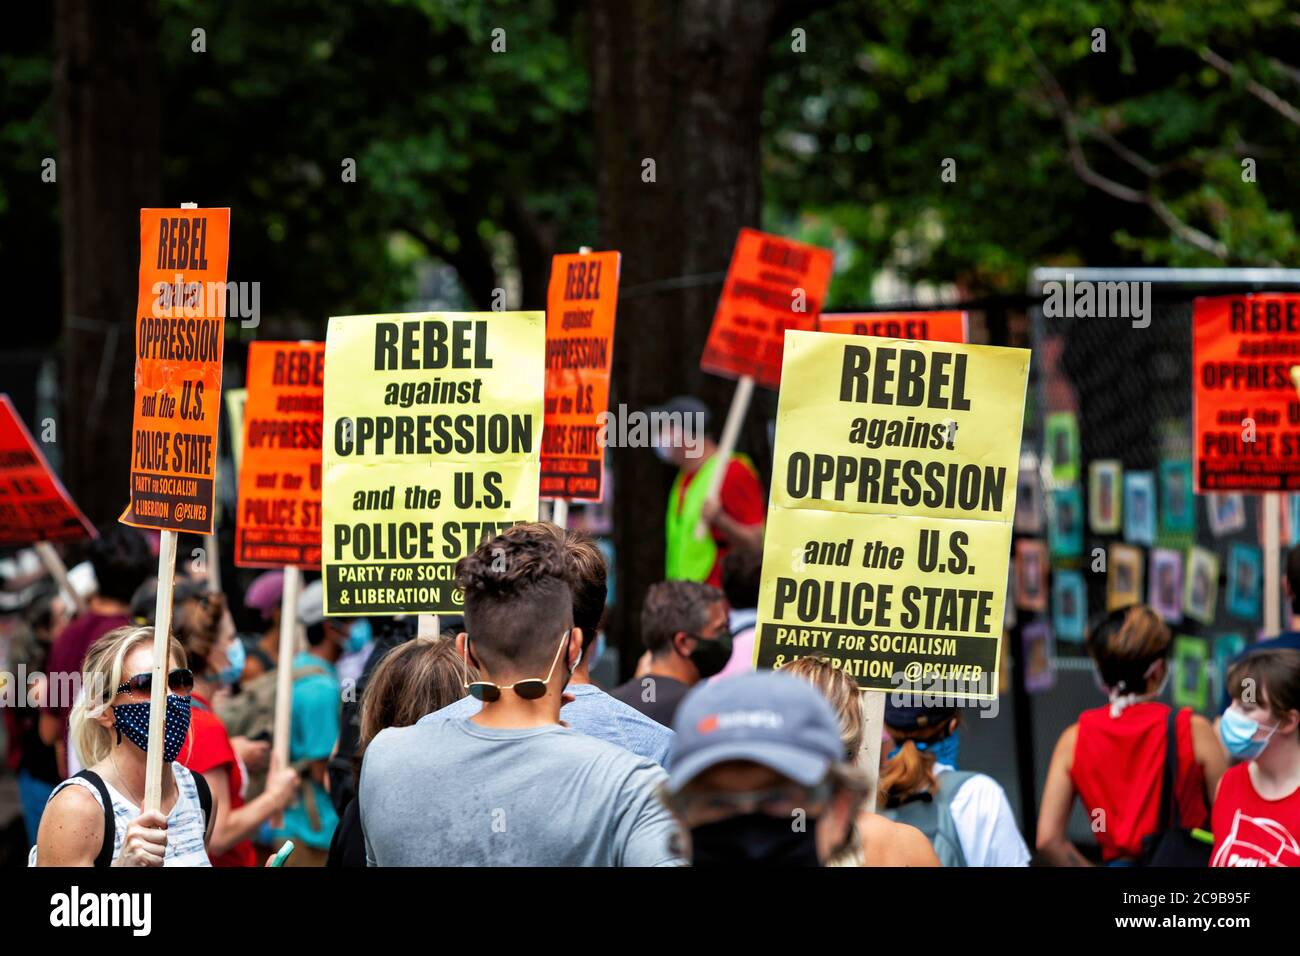 Protesters with signs at Lafayette Square / White House before March Against Trump's Police State, Washington, DC, United States Stock Photo